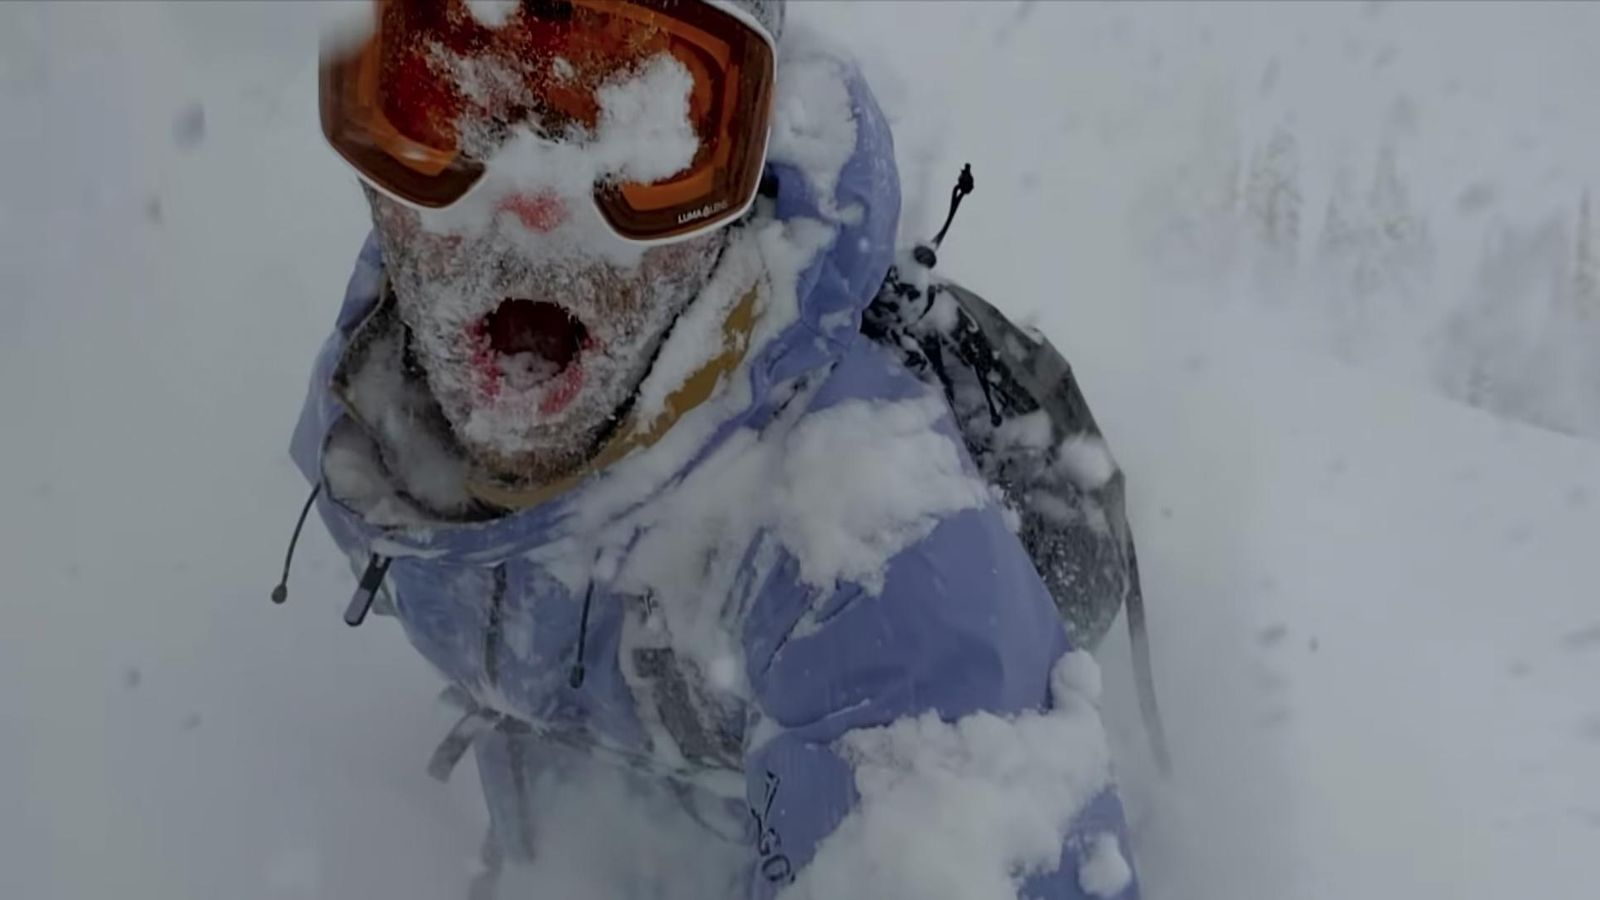 Apple pushes 'slofie' feature with snowboarding videos